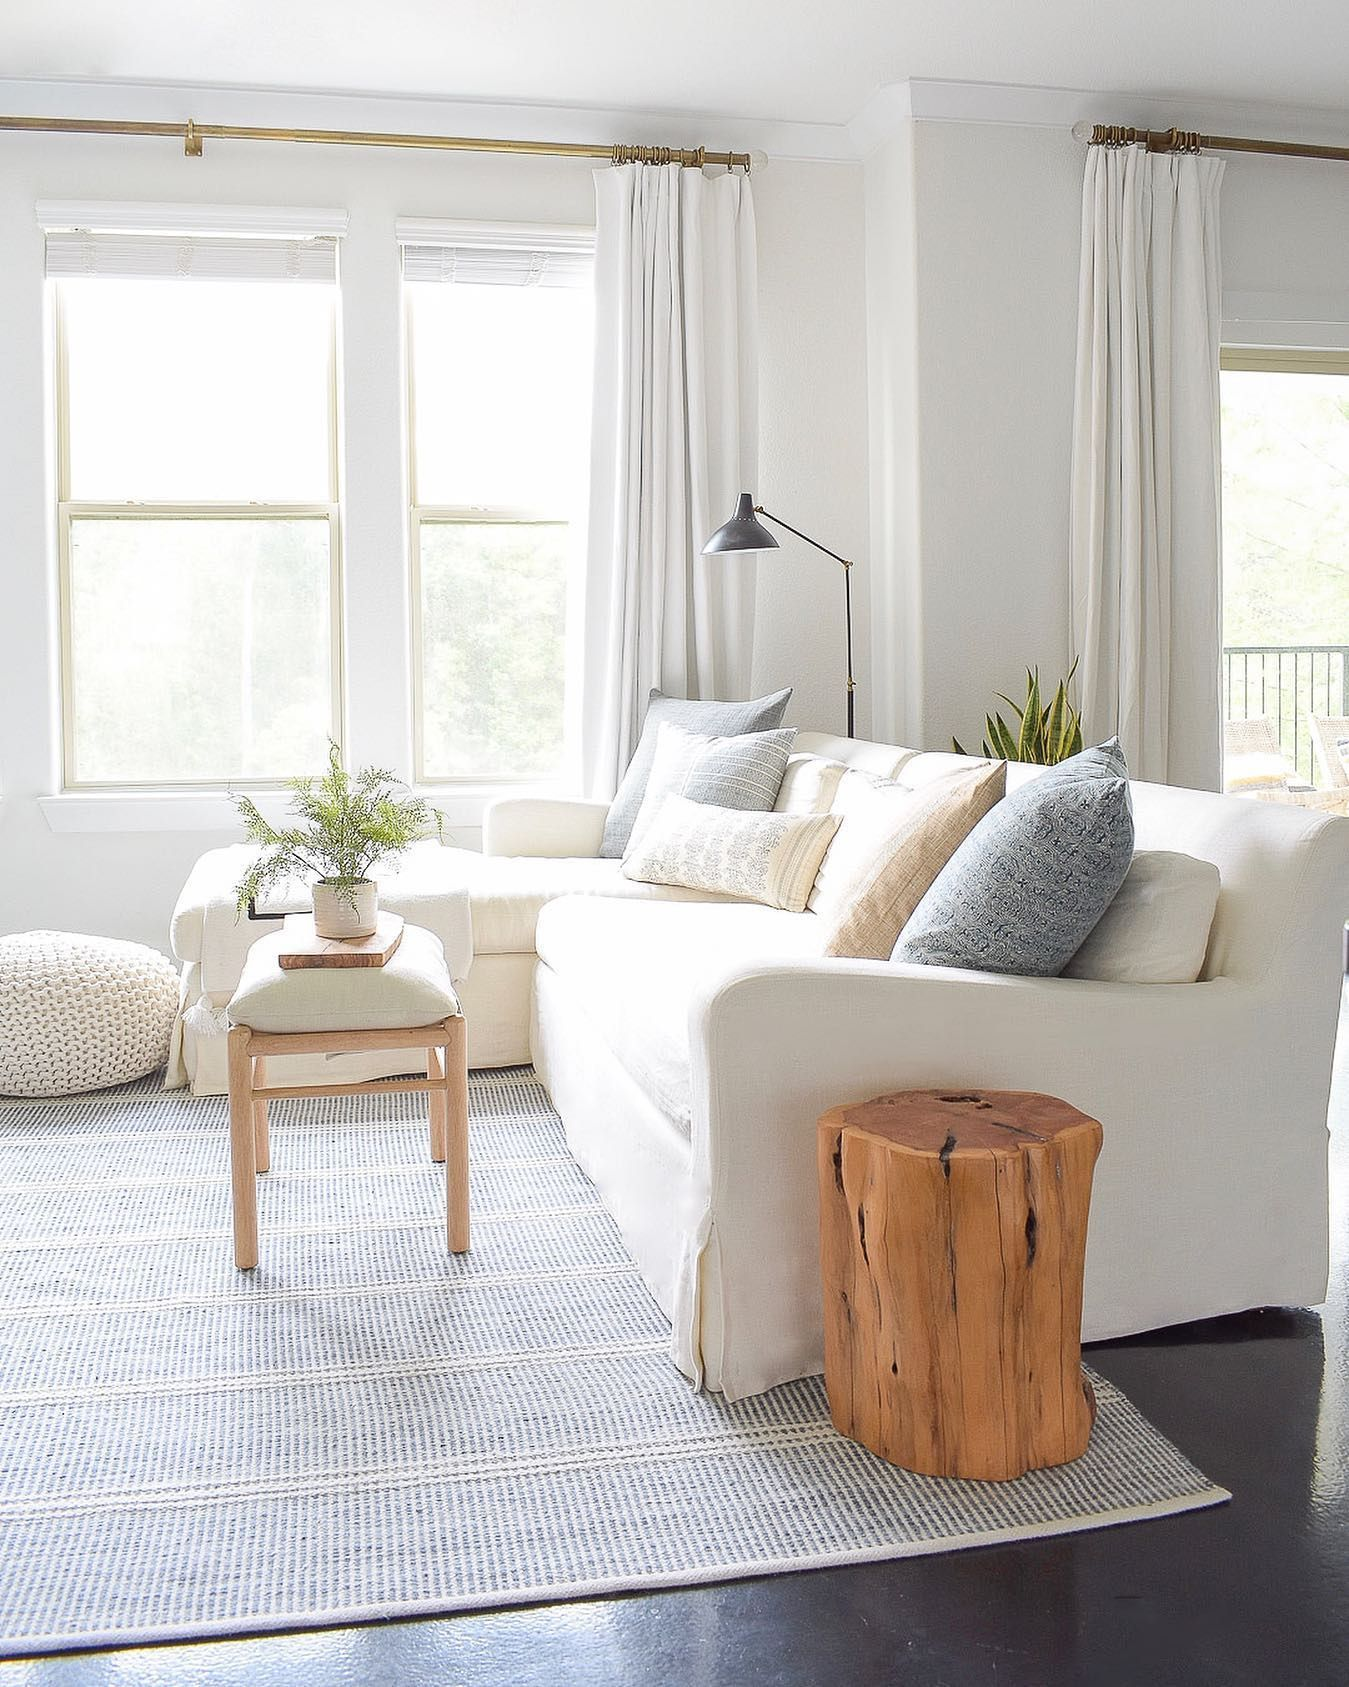 My Top 5 Summer Decorating Tips A Airy Summer Home Tour Zdesign At Home Summer Decor Home Living Room Decor